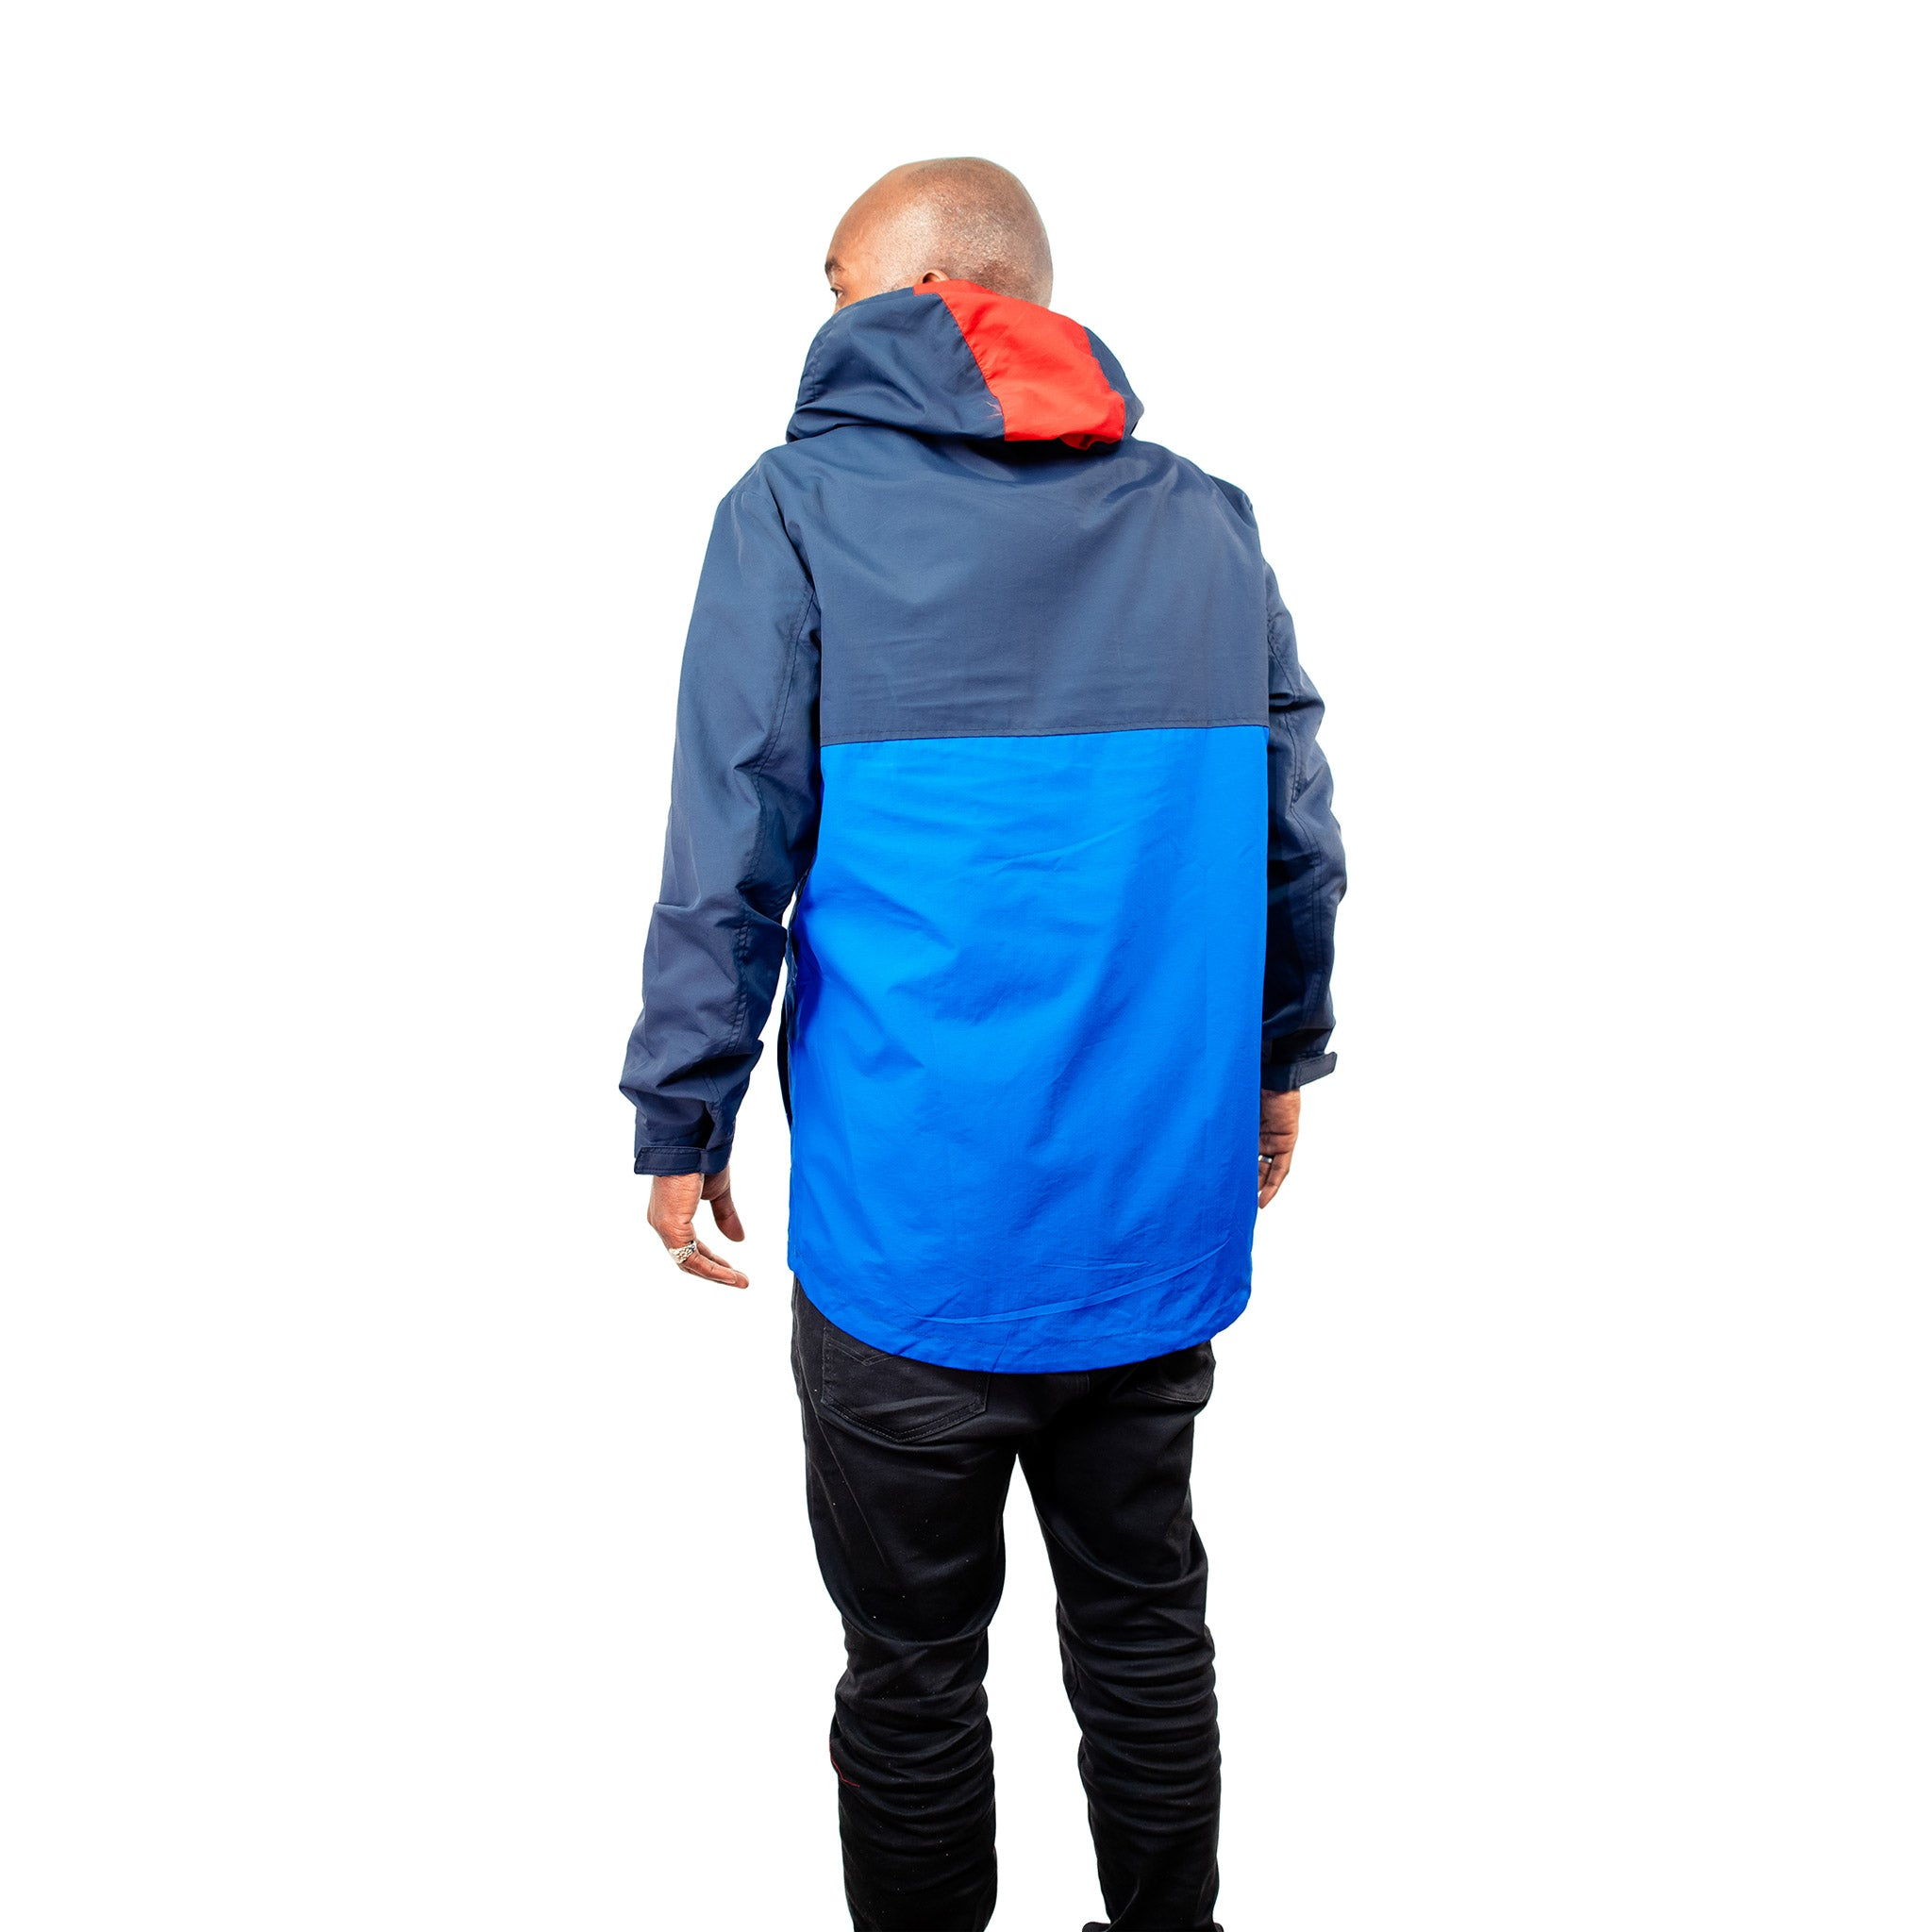 Primed Anorak Jacket